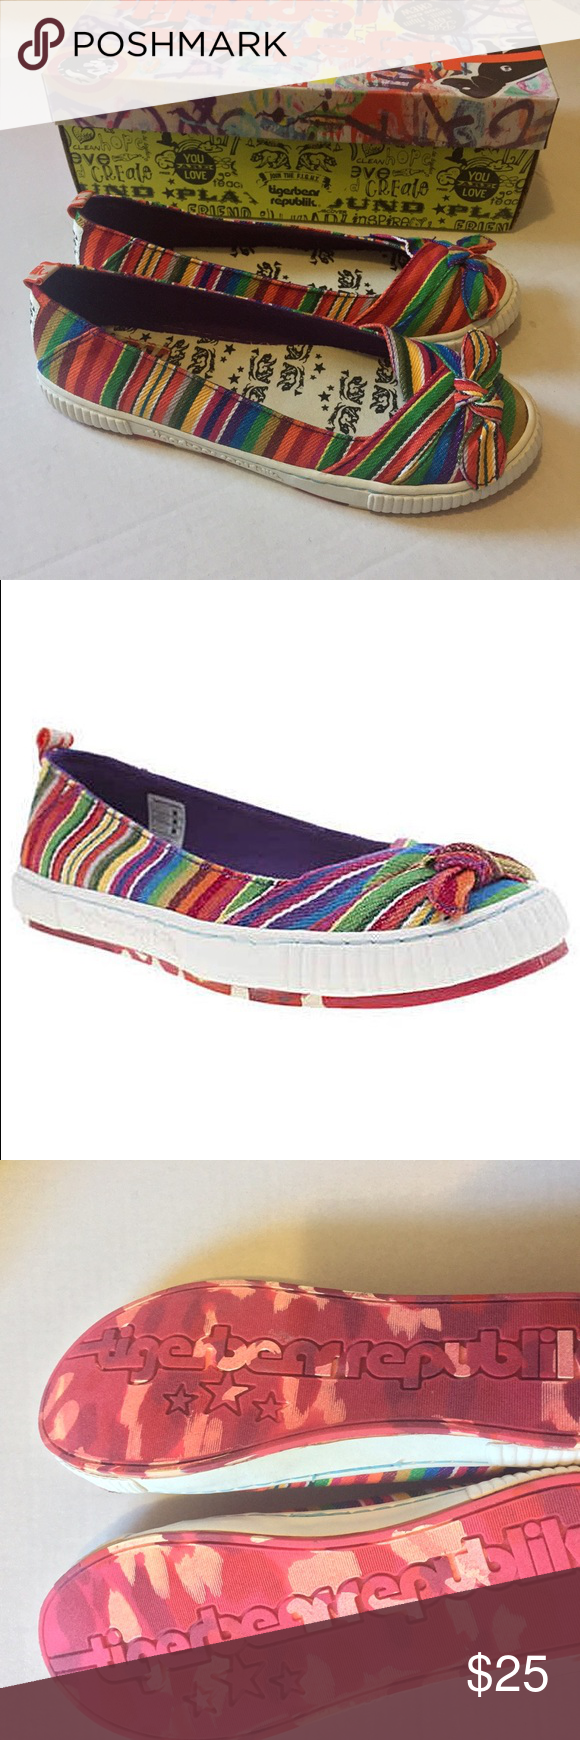 new in box Rainbow canvas flats brand new in box very vibrant canvas flats Tigerbear Republik Tease  Shoes Flats & Loafers